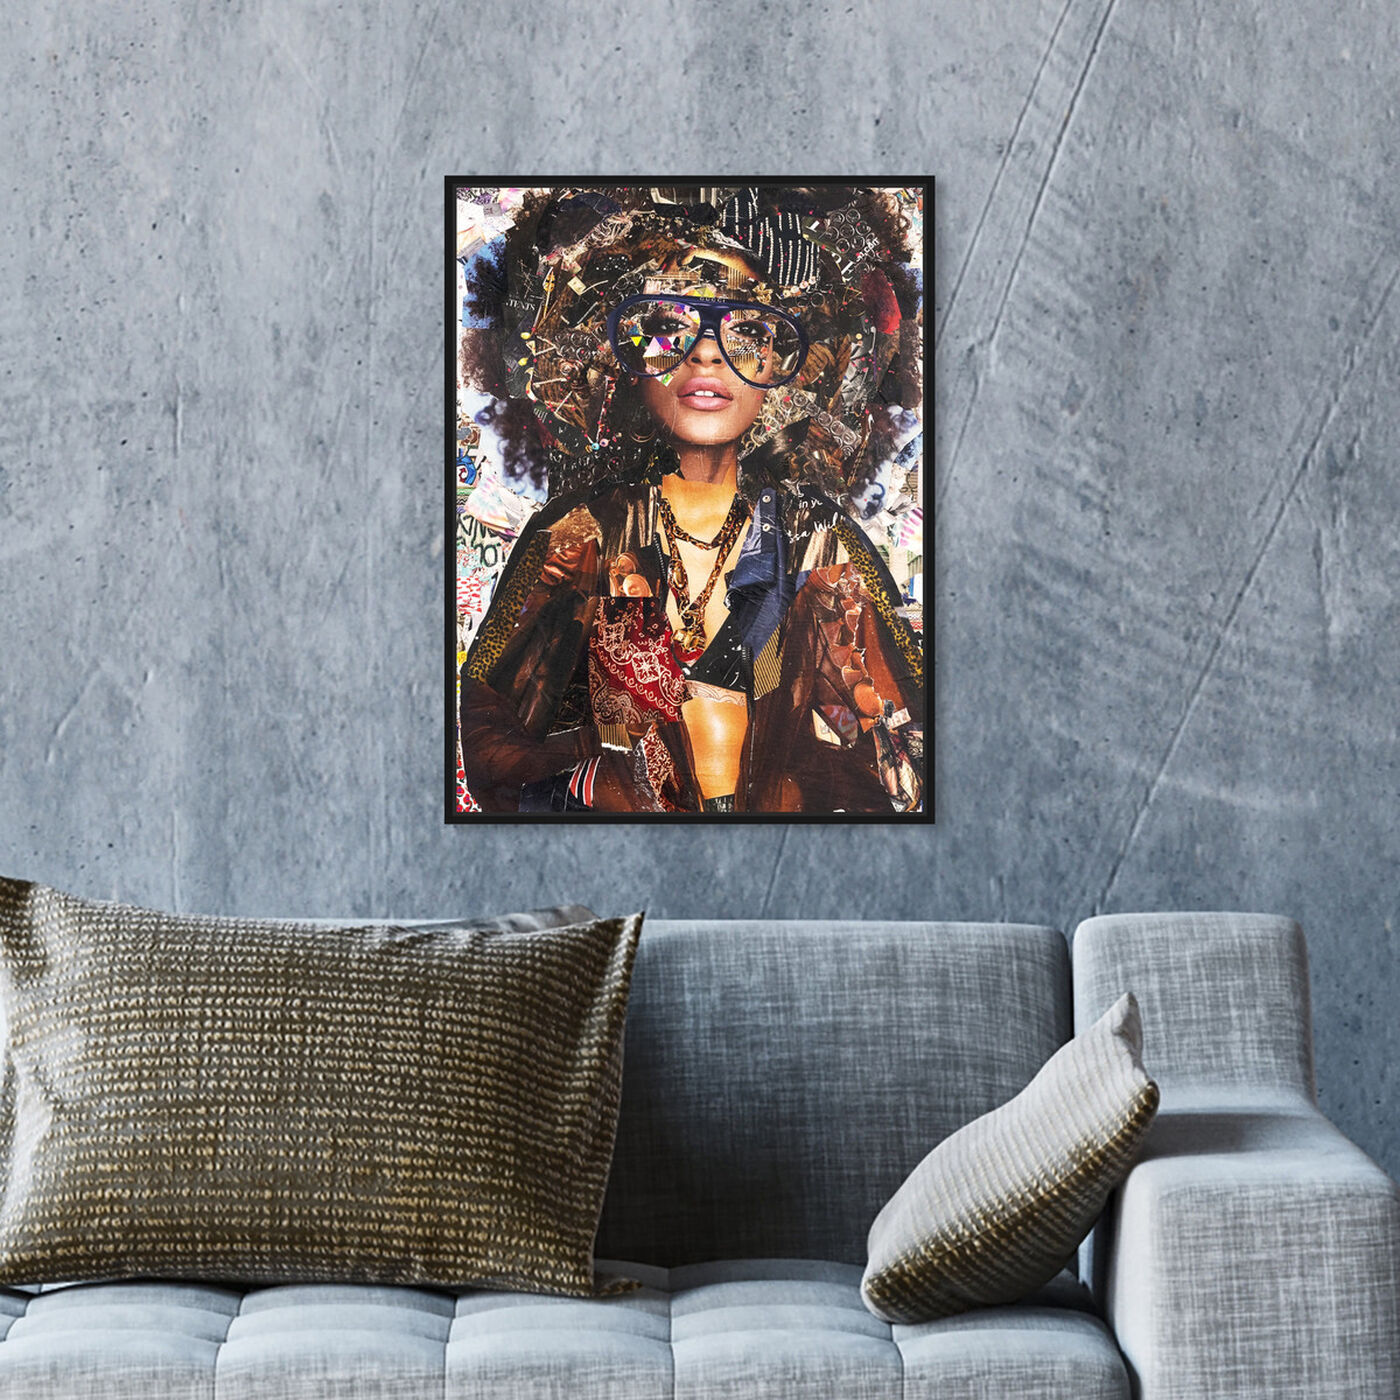 Hanging view of Katy Hirschfeld - Glam Fro featuring fashion and glam and portraits art.